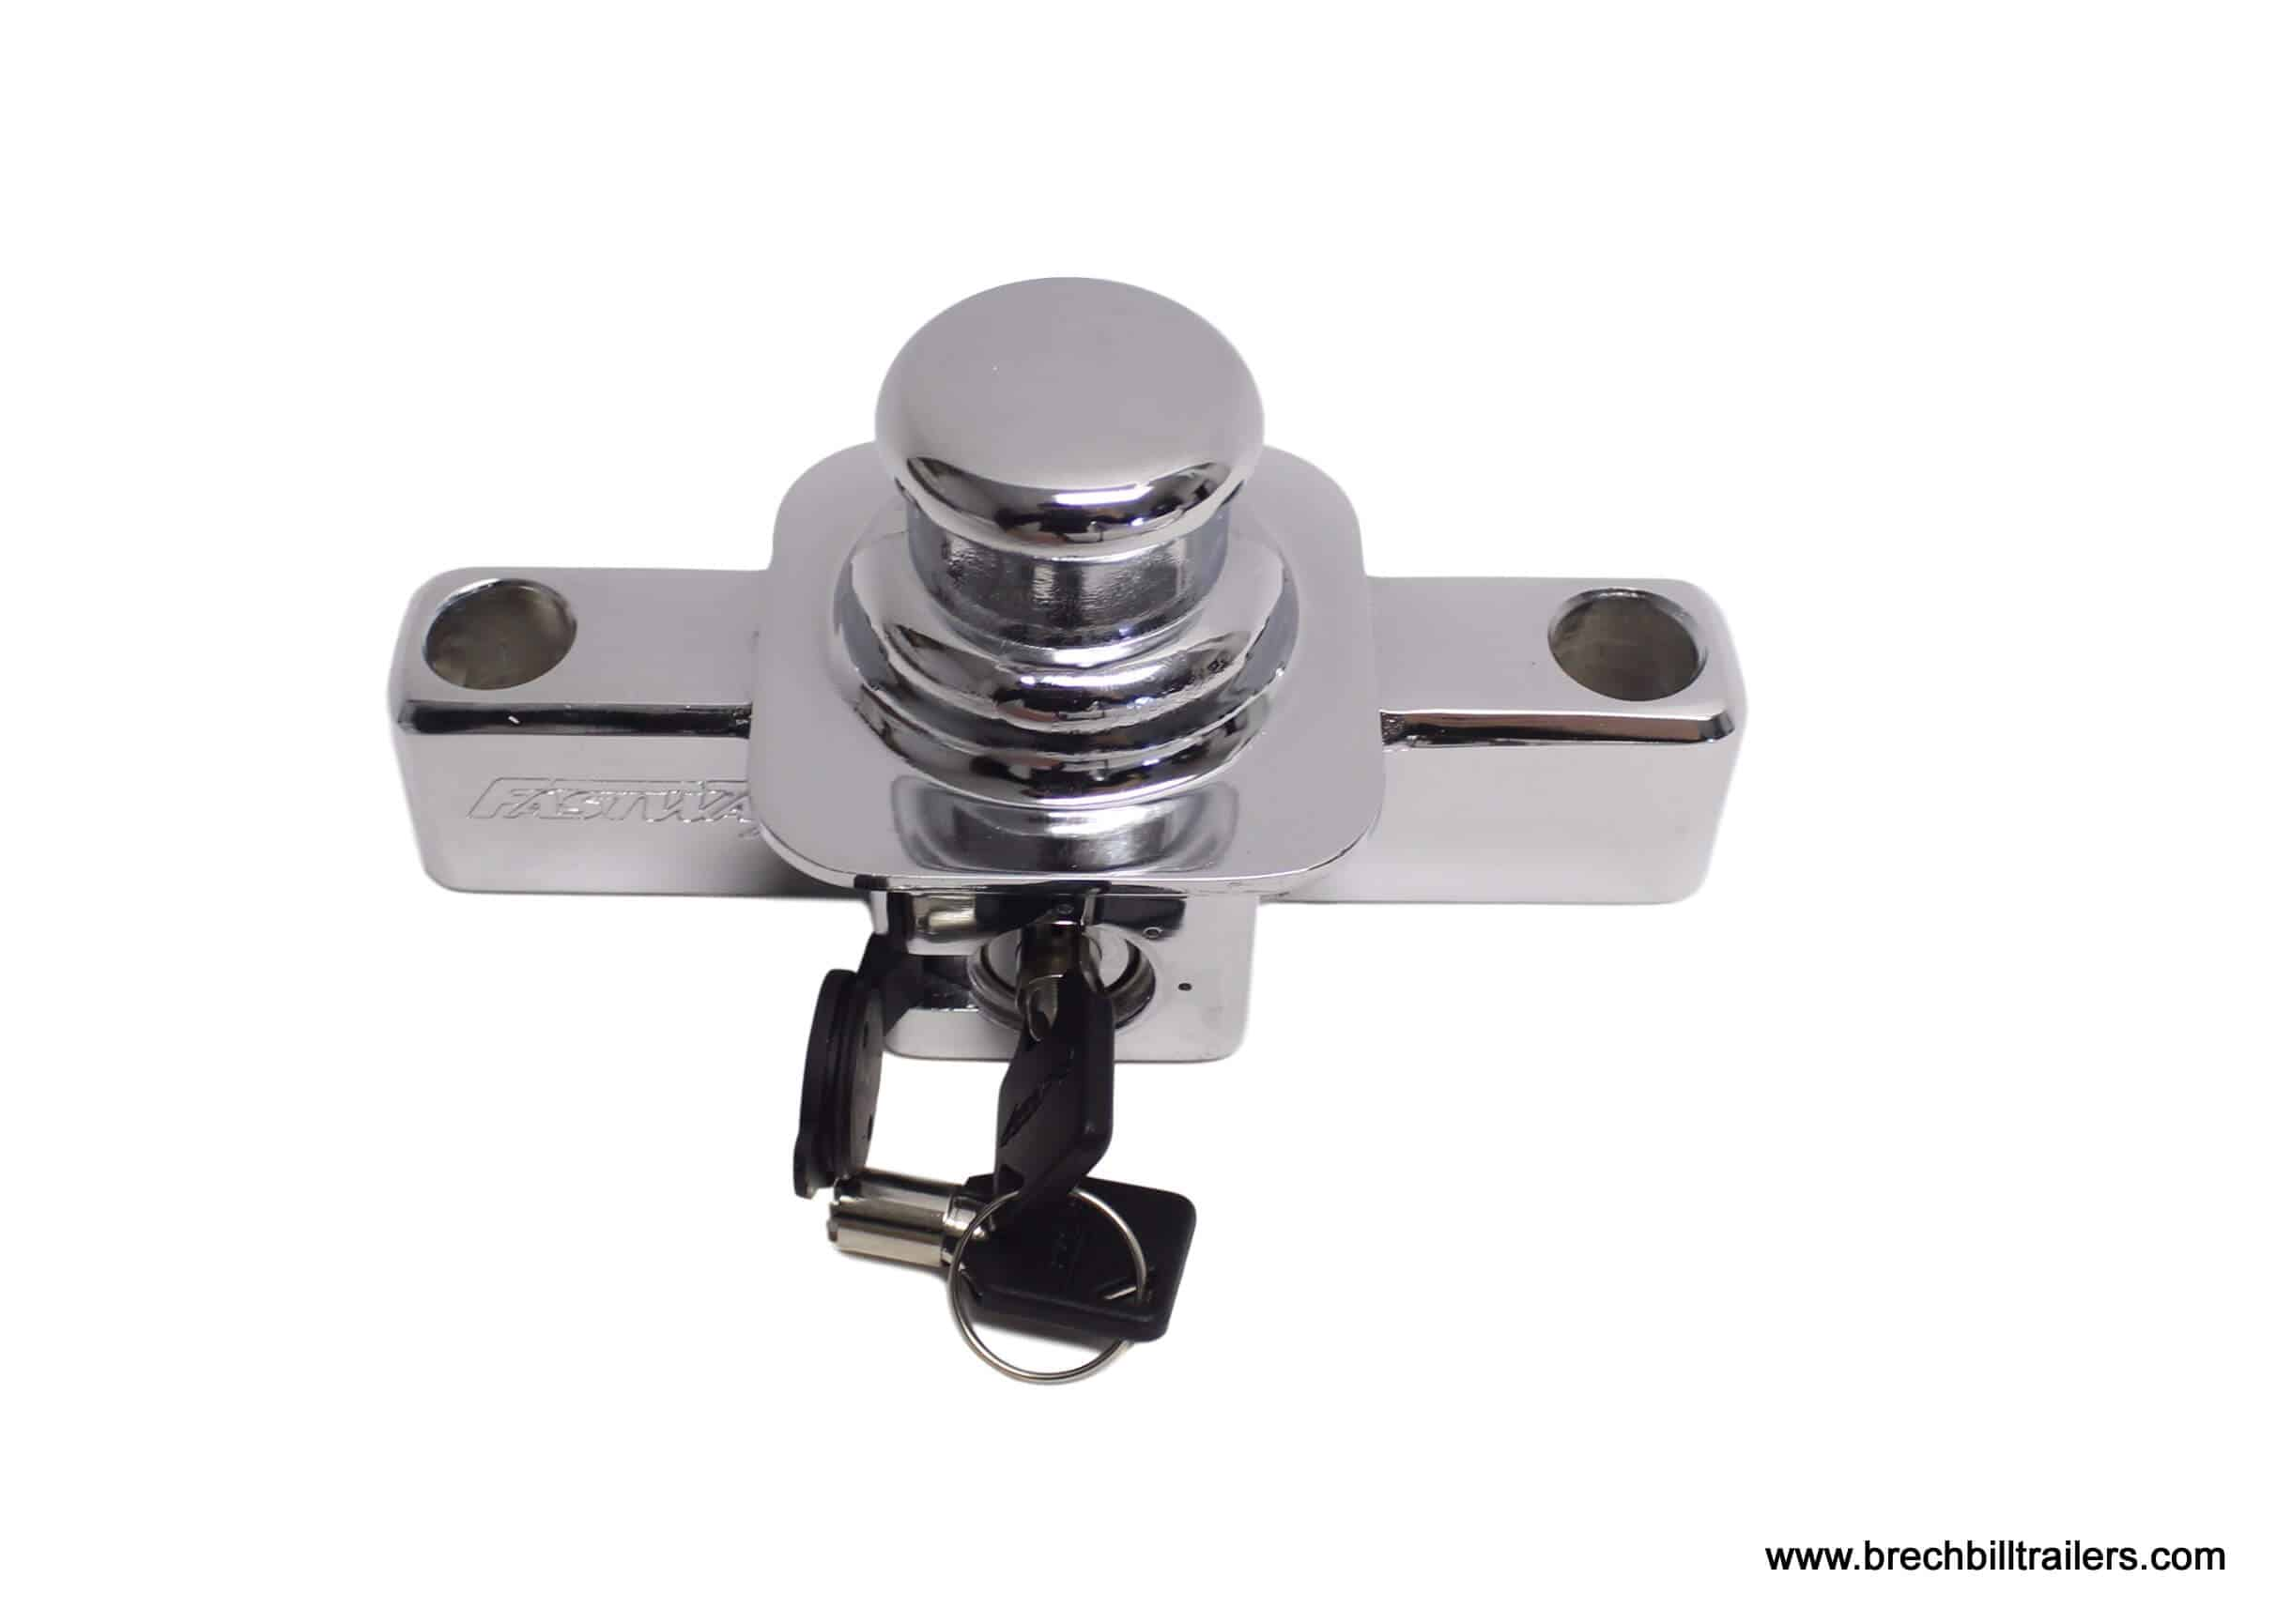 Universal Coupler Lock Maximum Security